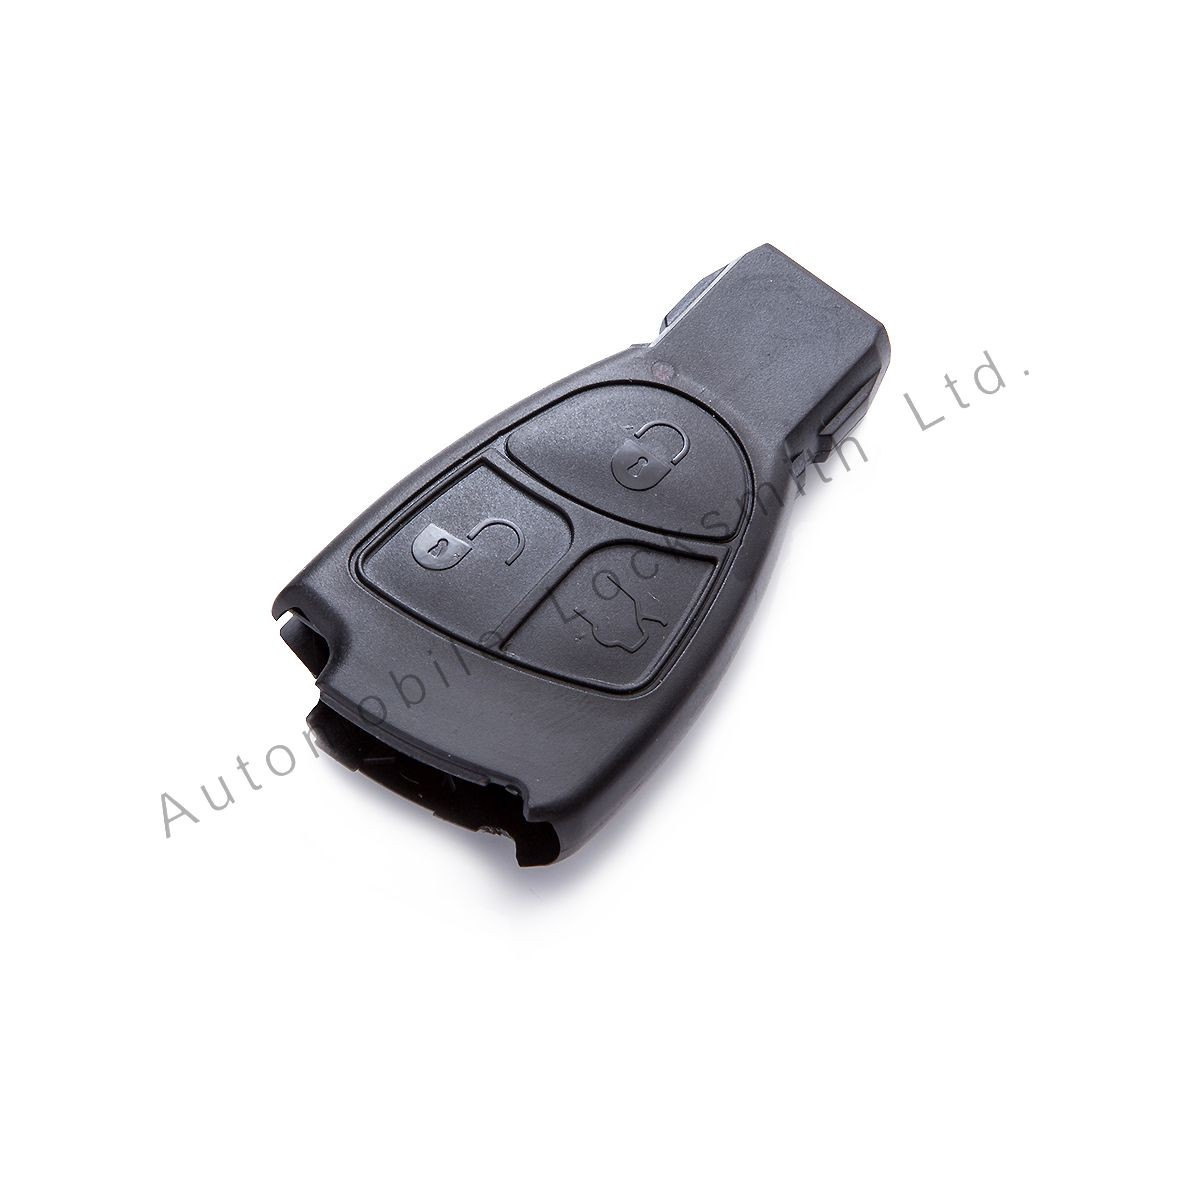 Smart key case shell for Mercedes Benz 3 button remote key